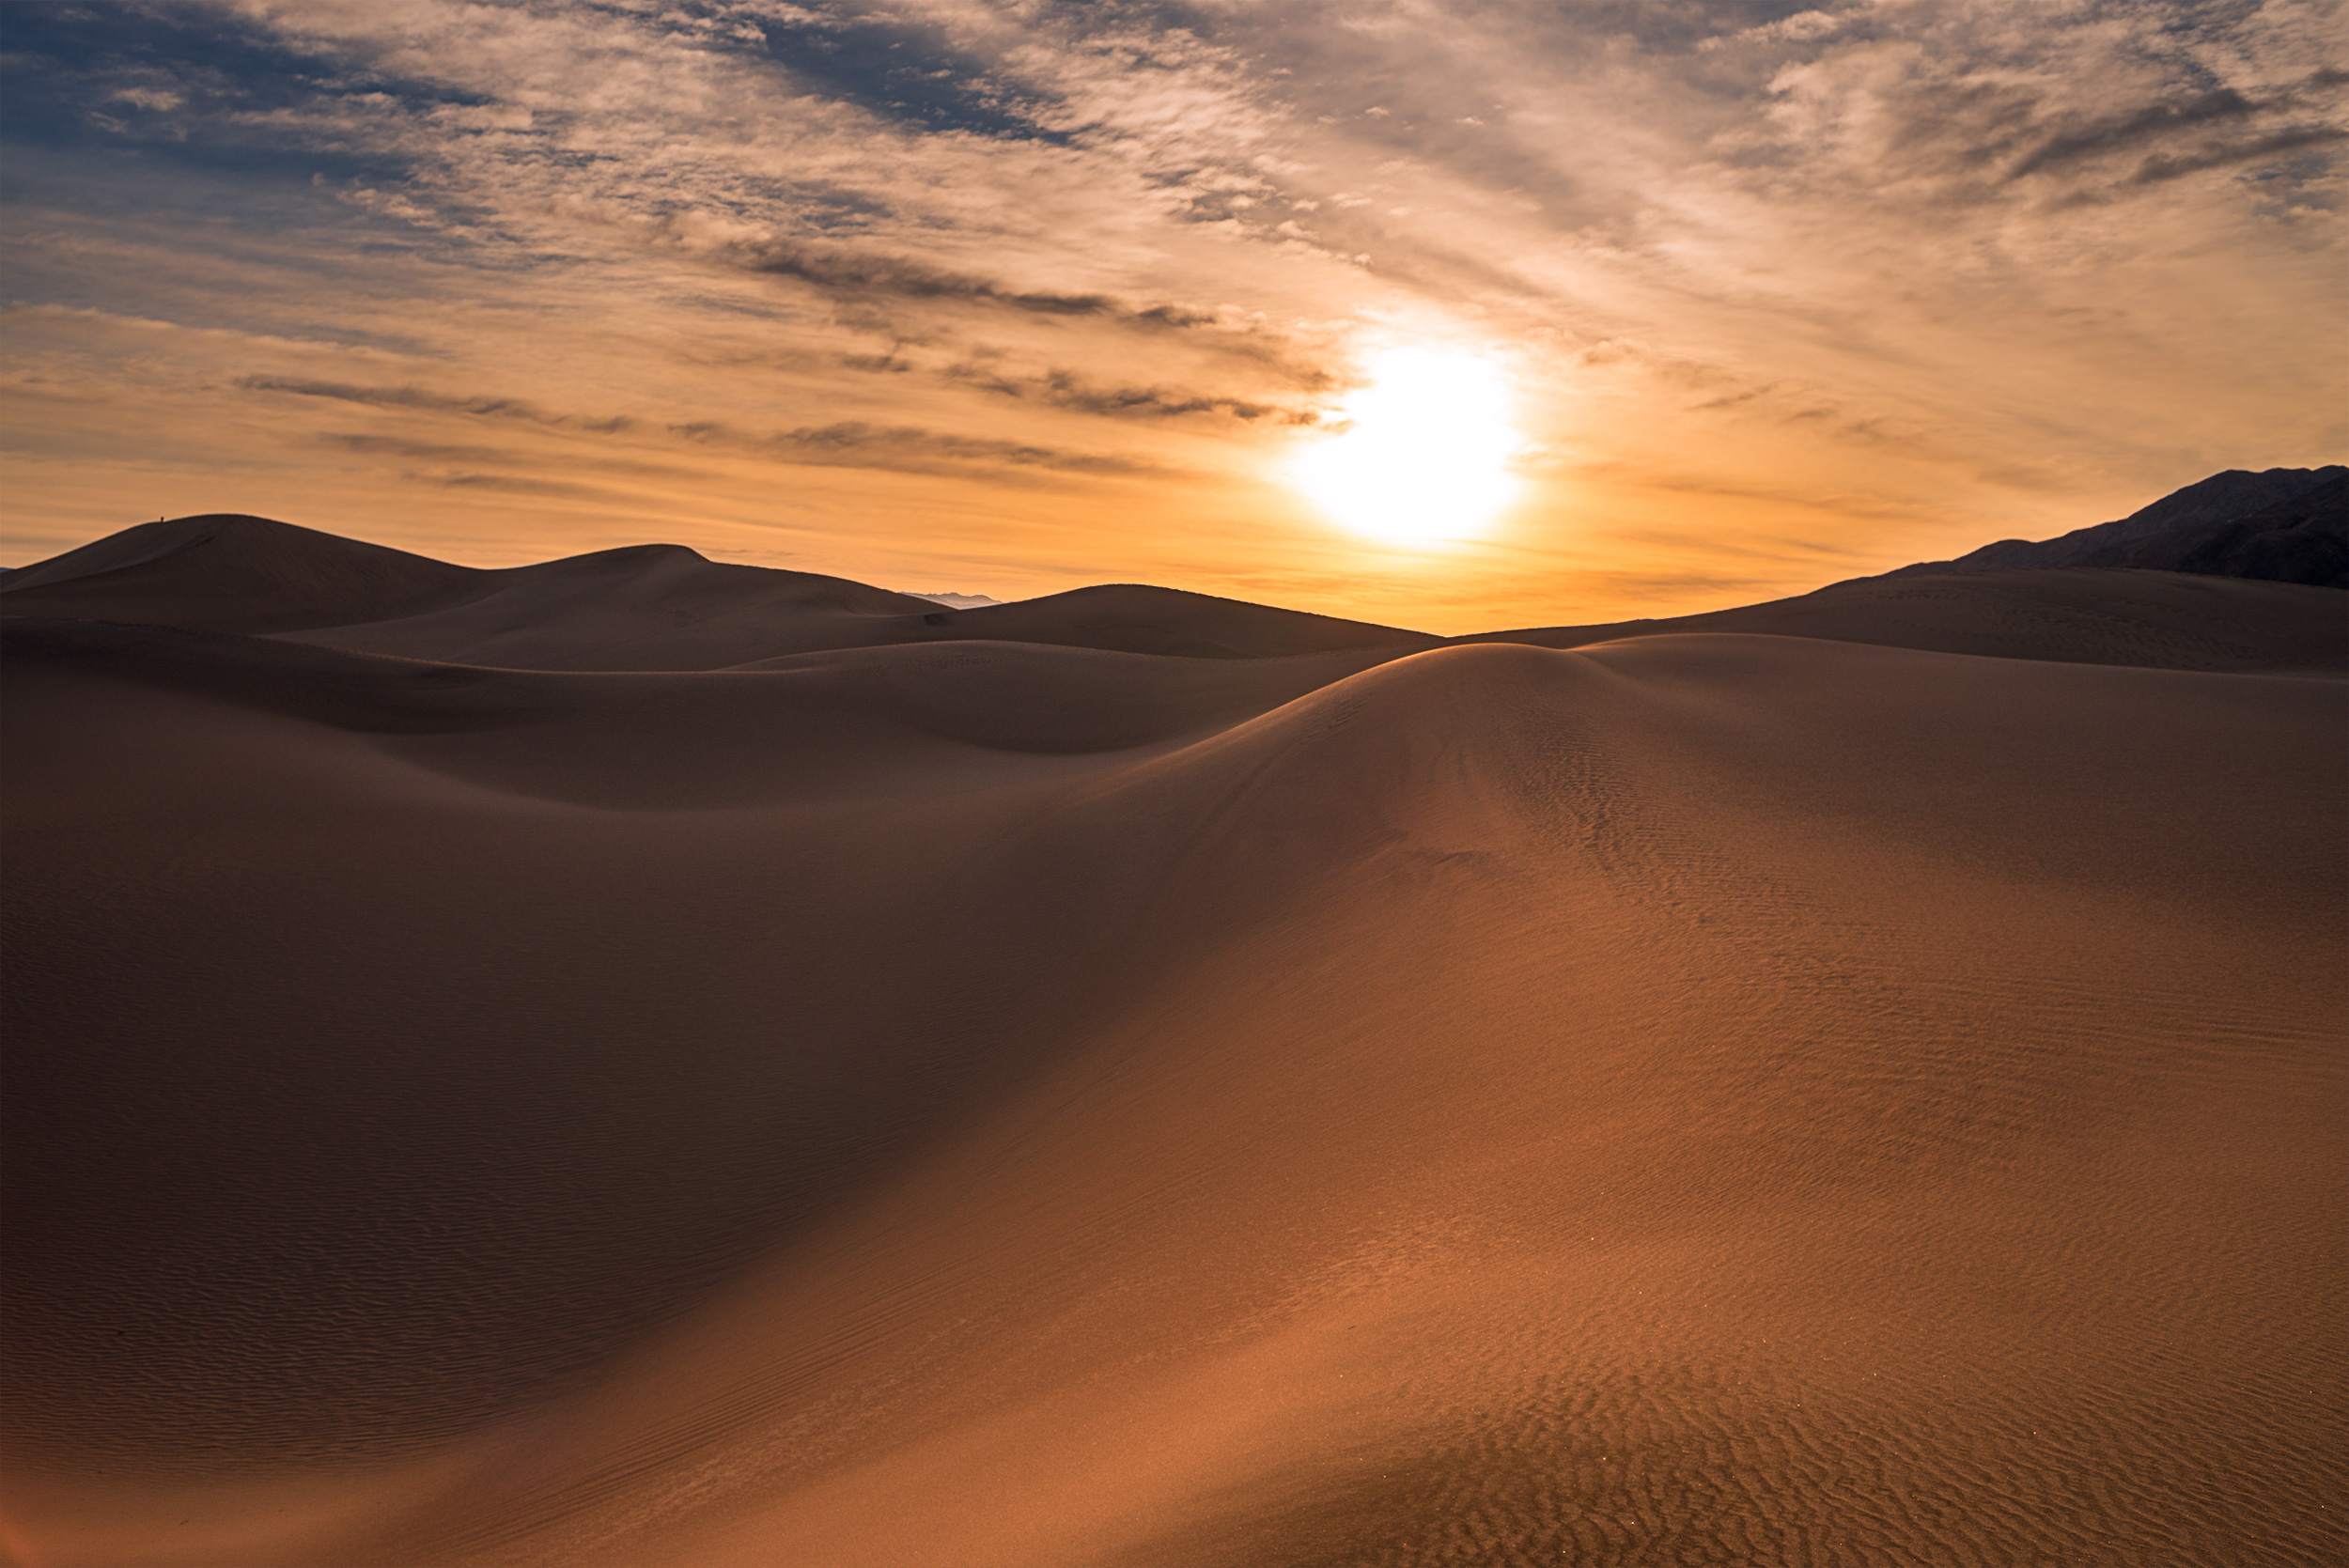 Mesquite Flat Sand Dunes, Death Valley, California. Taken a bit after sunrise, towards the other side of the dune field.